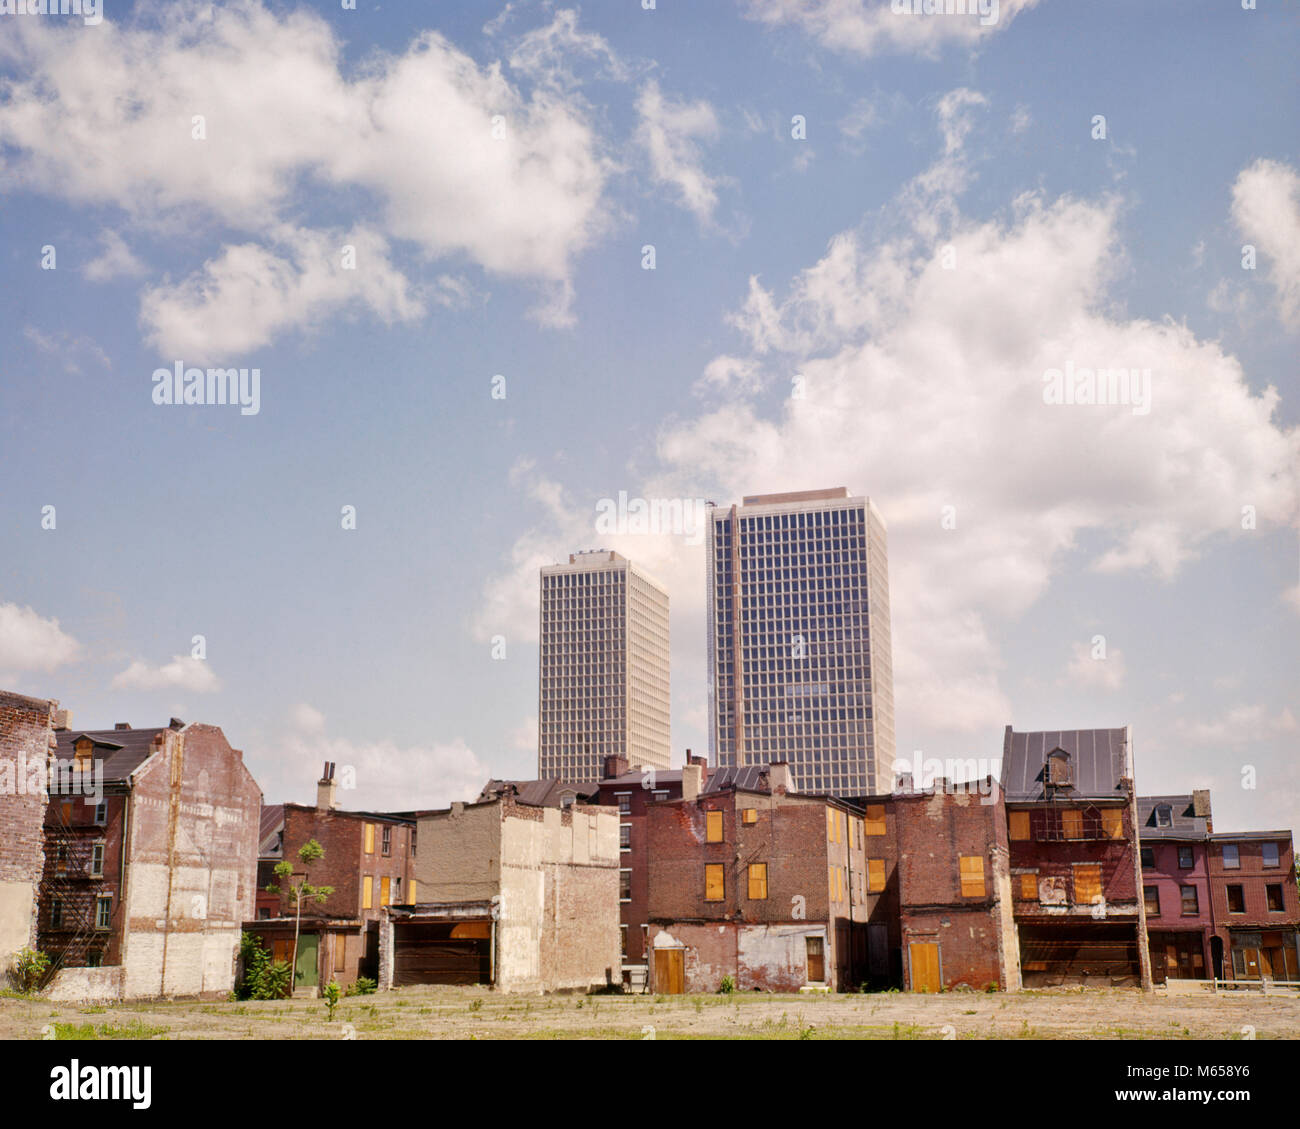 1960s URBAN RENEWAL RUN DOWN OLD HOUSES IN FOREGROUND NEW TALL APARTMENT BUILDINGS IN BACKGROUND - kb4609 HAR001 - Stock Image